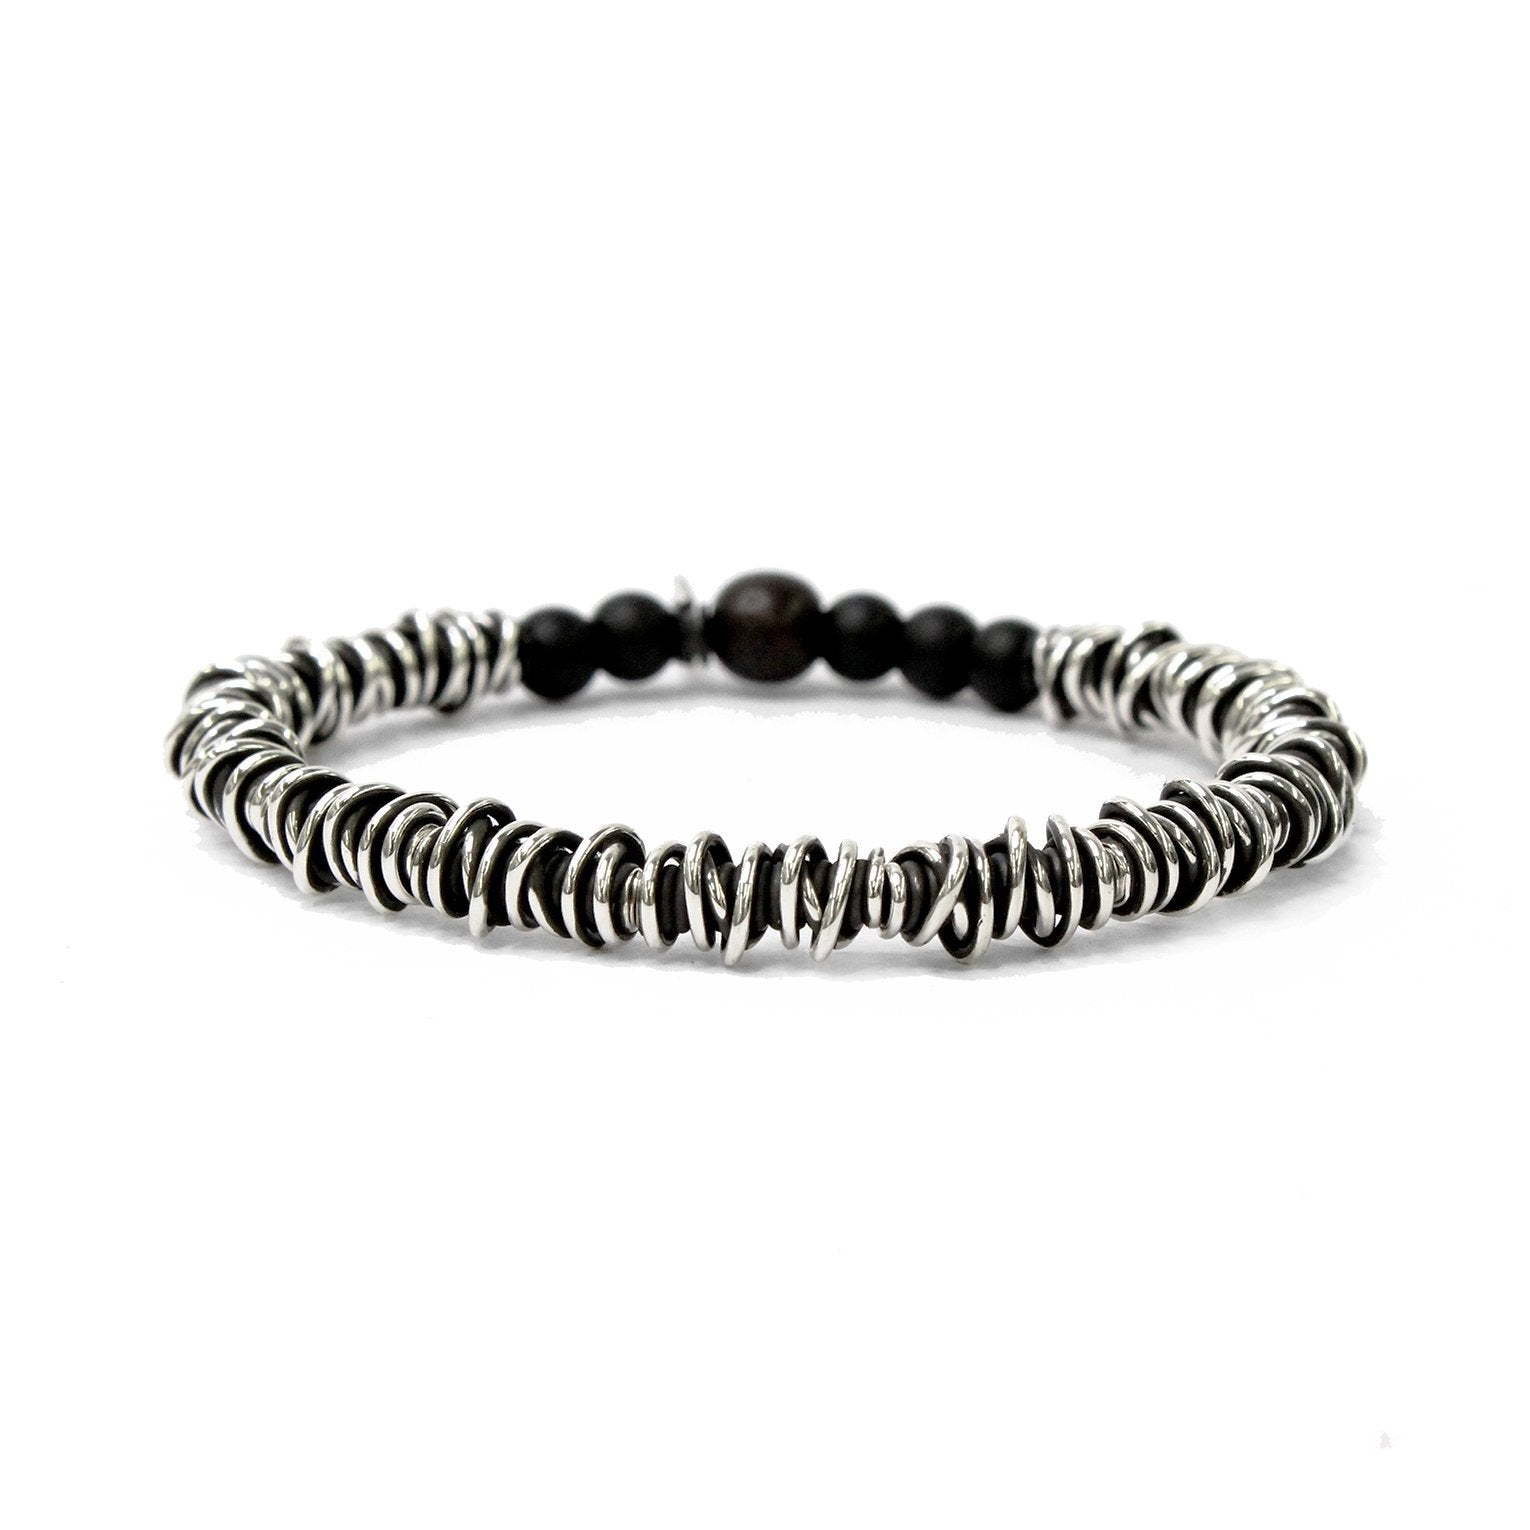 KENTON MICHAEL STERLING WIRE WRAP BRACELET